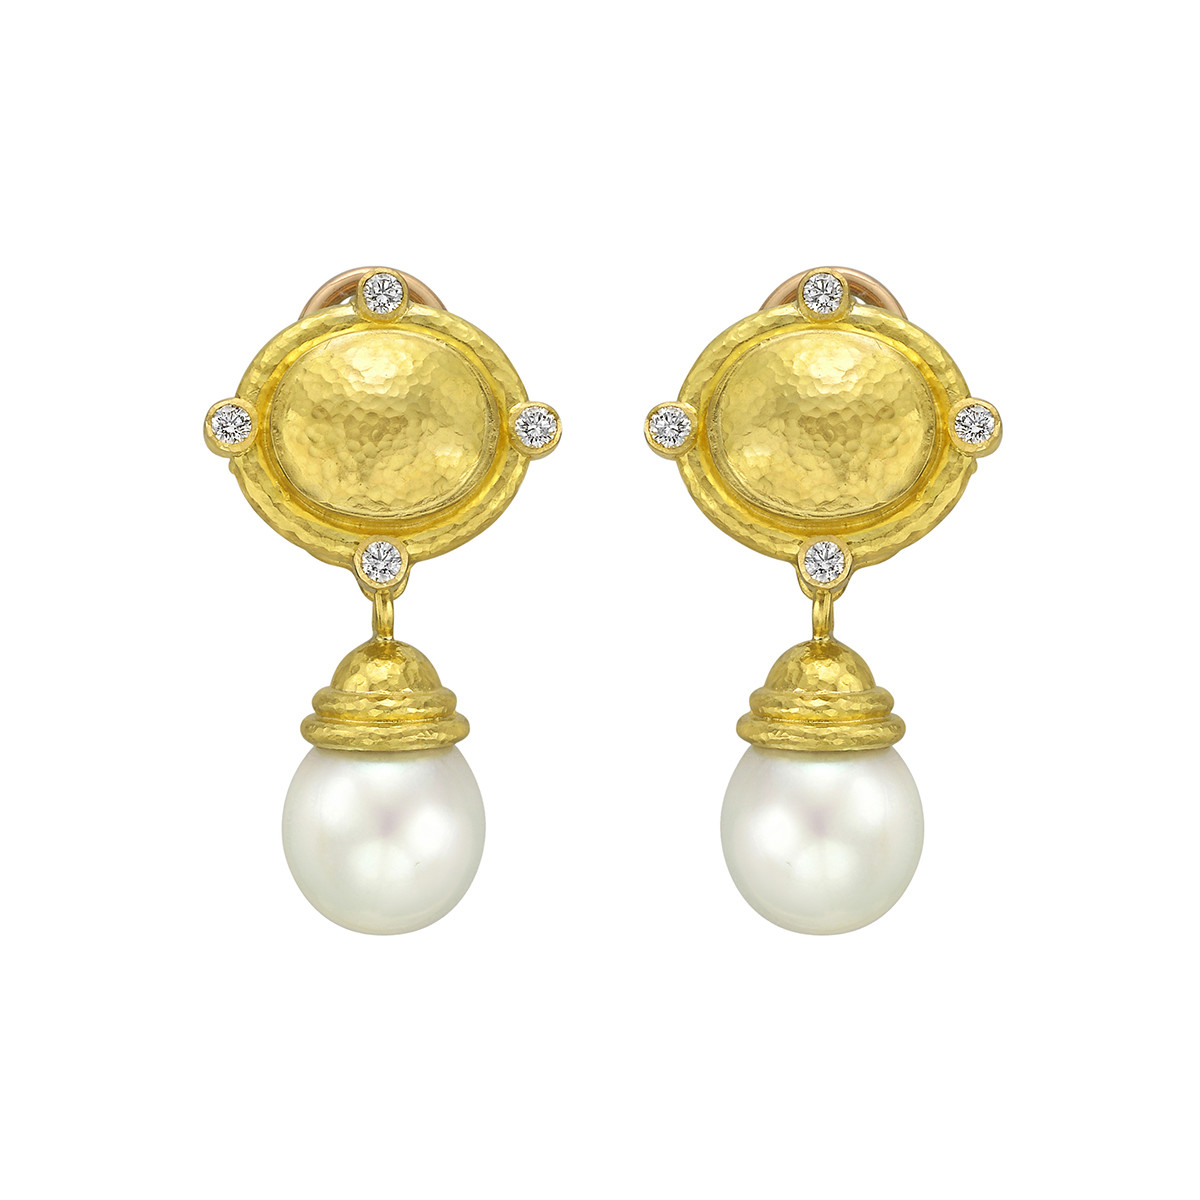 19k Yellow Gold, Diamond & Pearl Drop Earrings